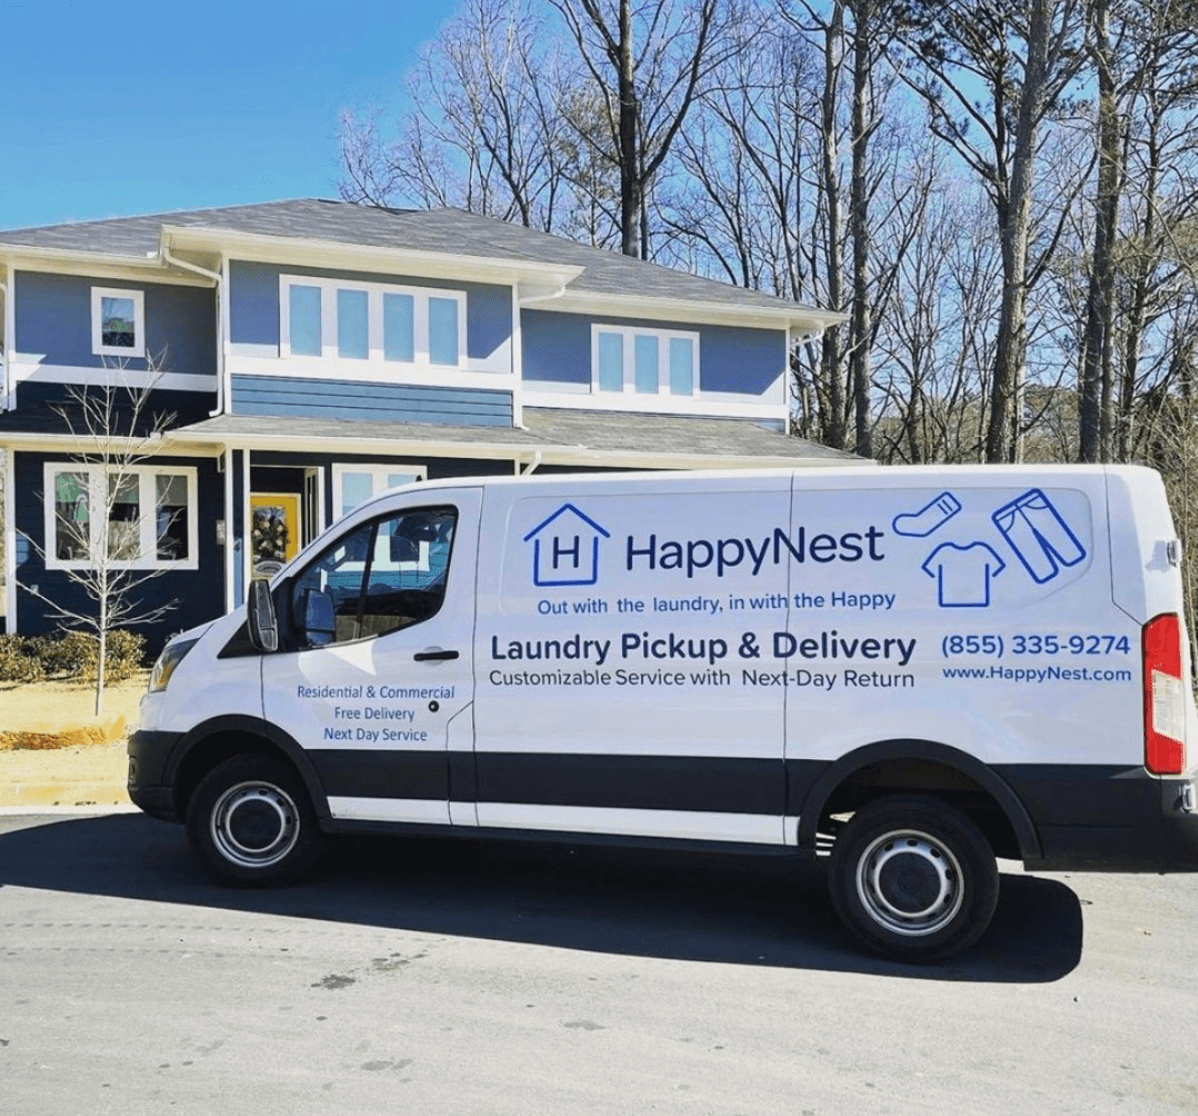 2 HappyNest Laundromat Partners Share Success in Live Webinar